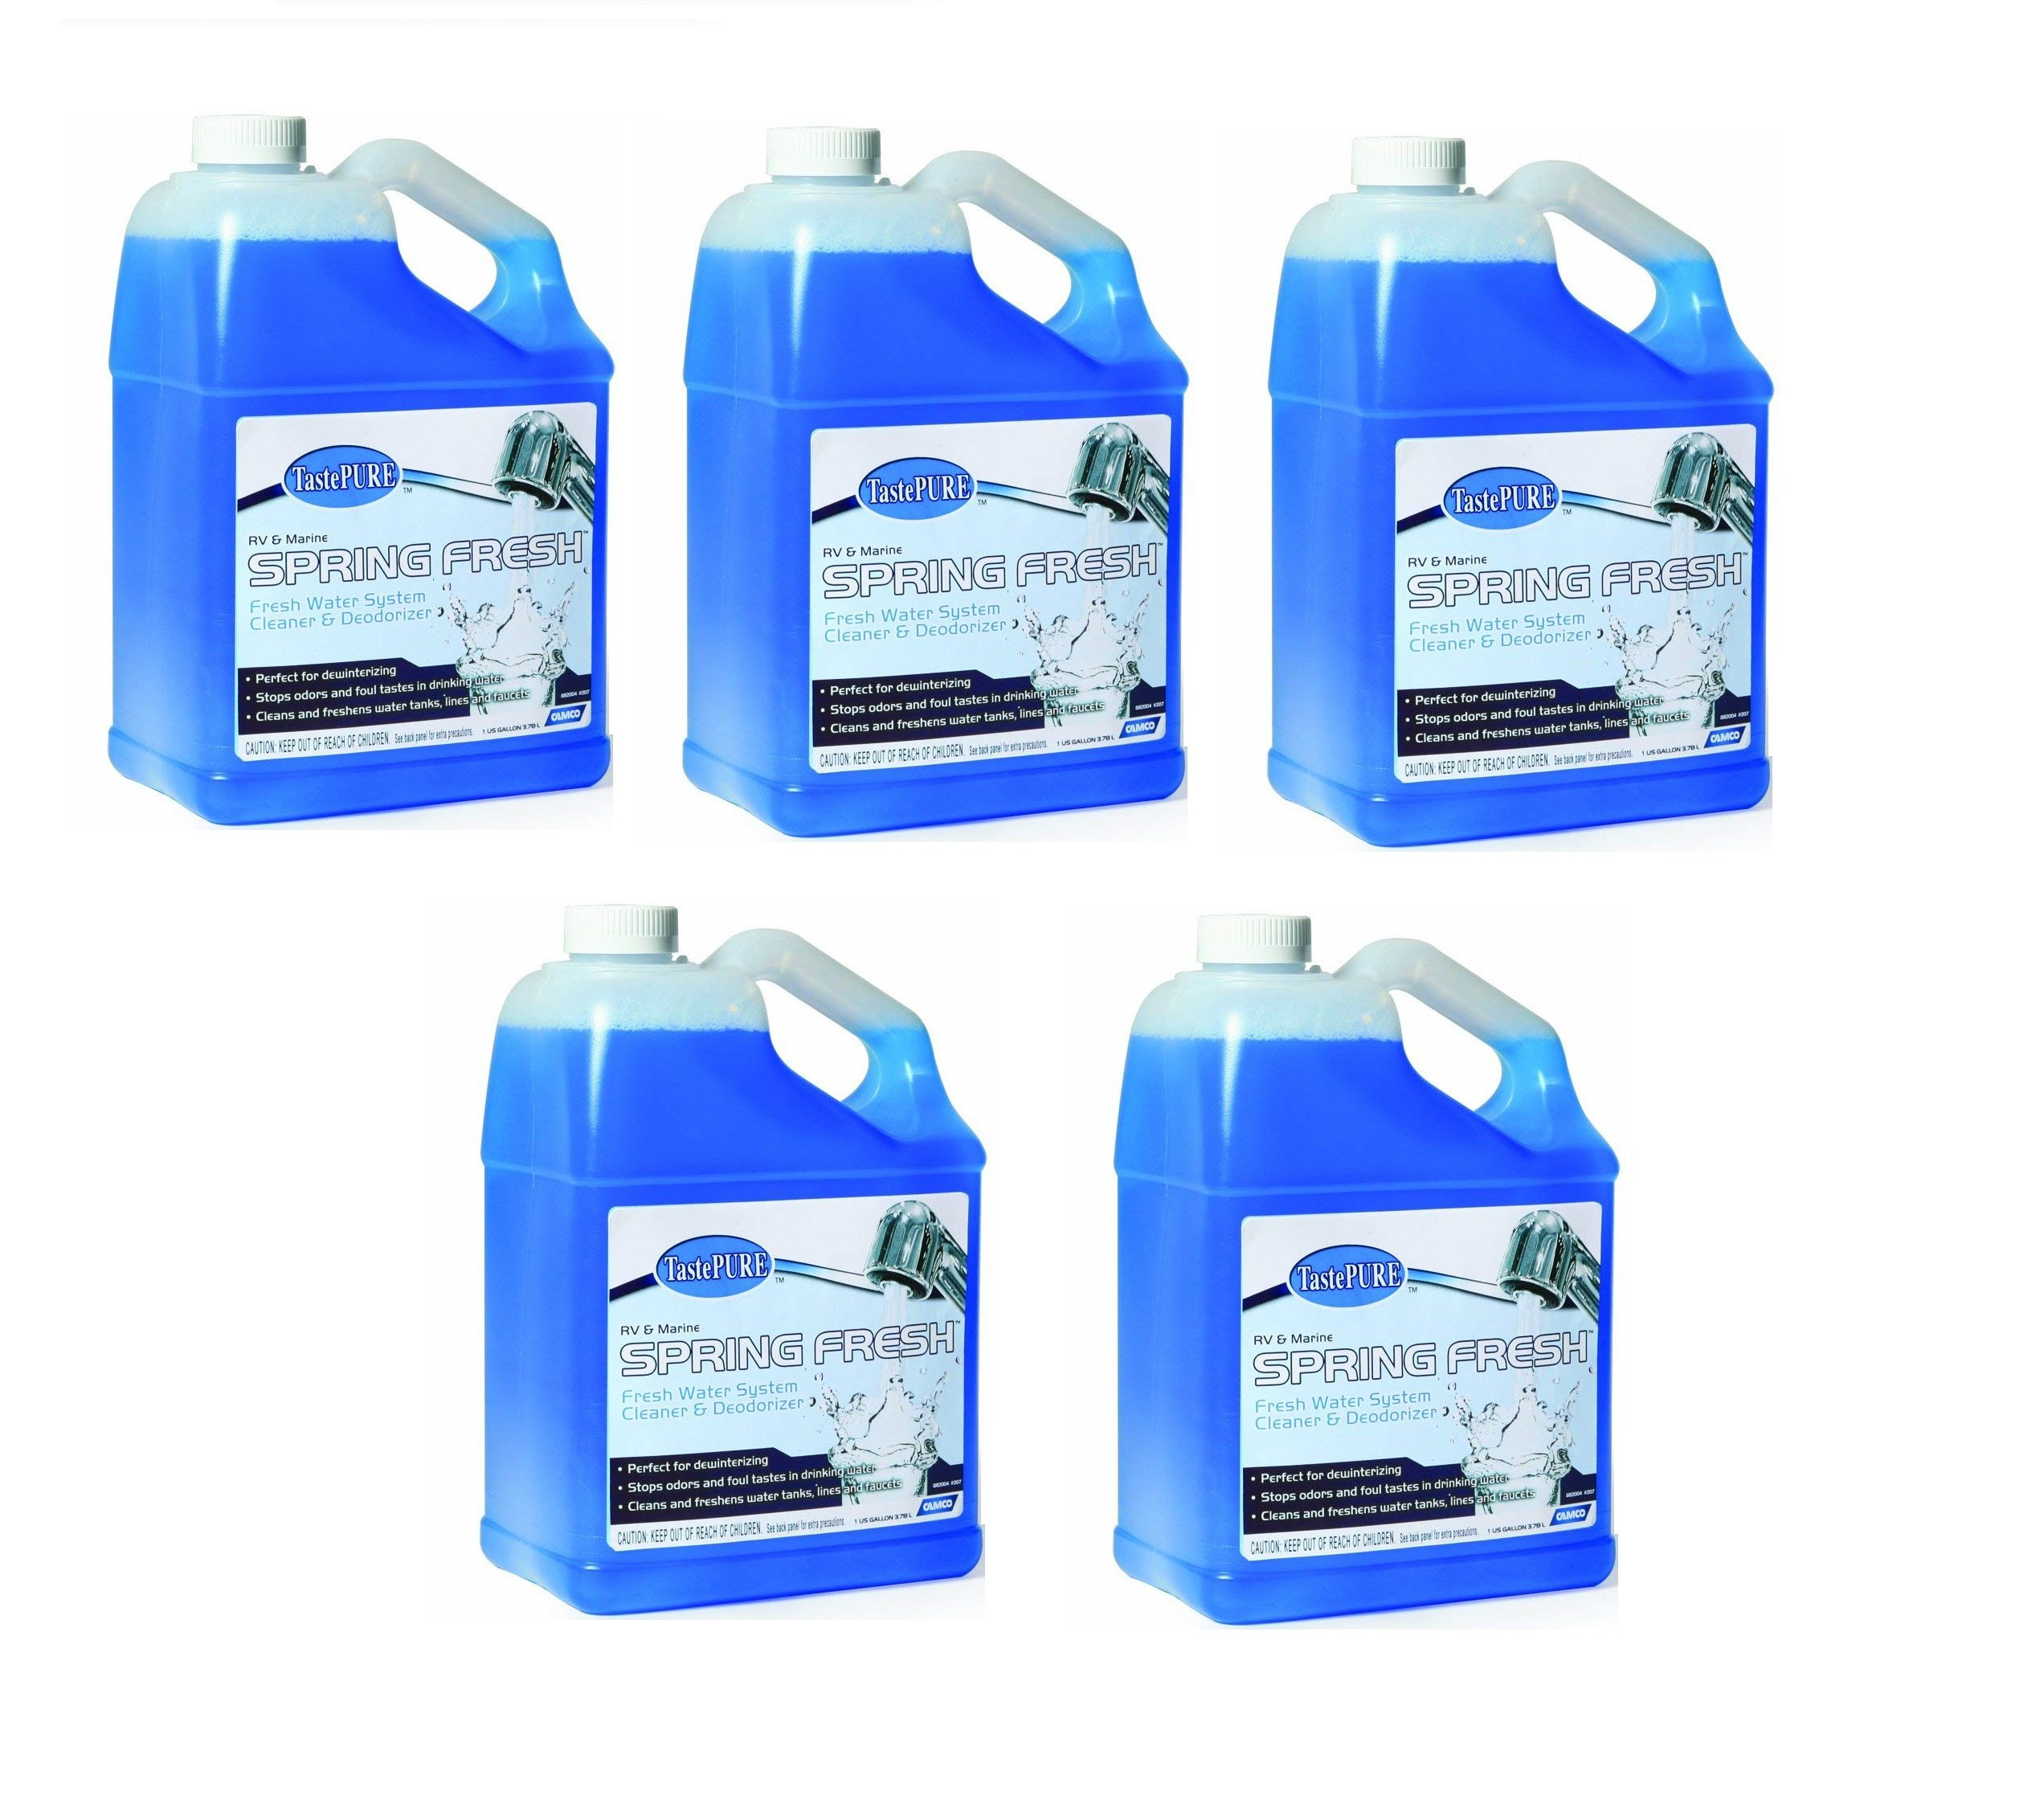 Camco  40207 TastePURE Spring Fresh Water System Cleaner and Deodorizer - 1 Gallon (5) by Camco